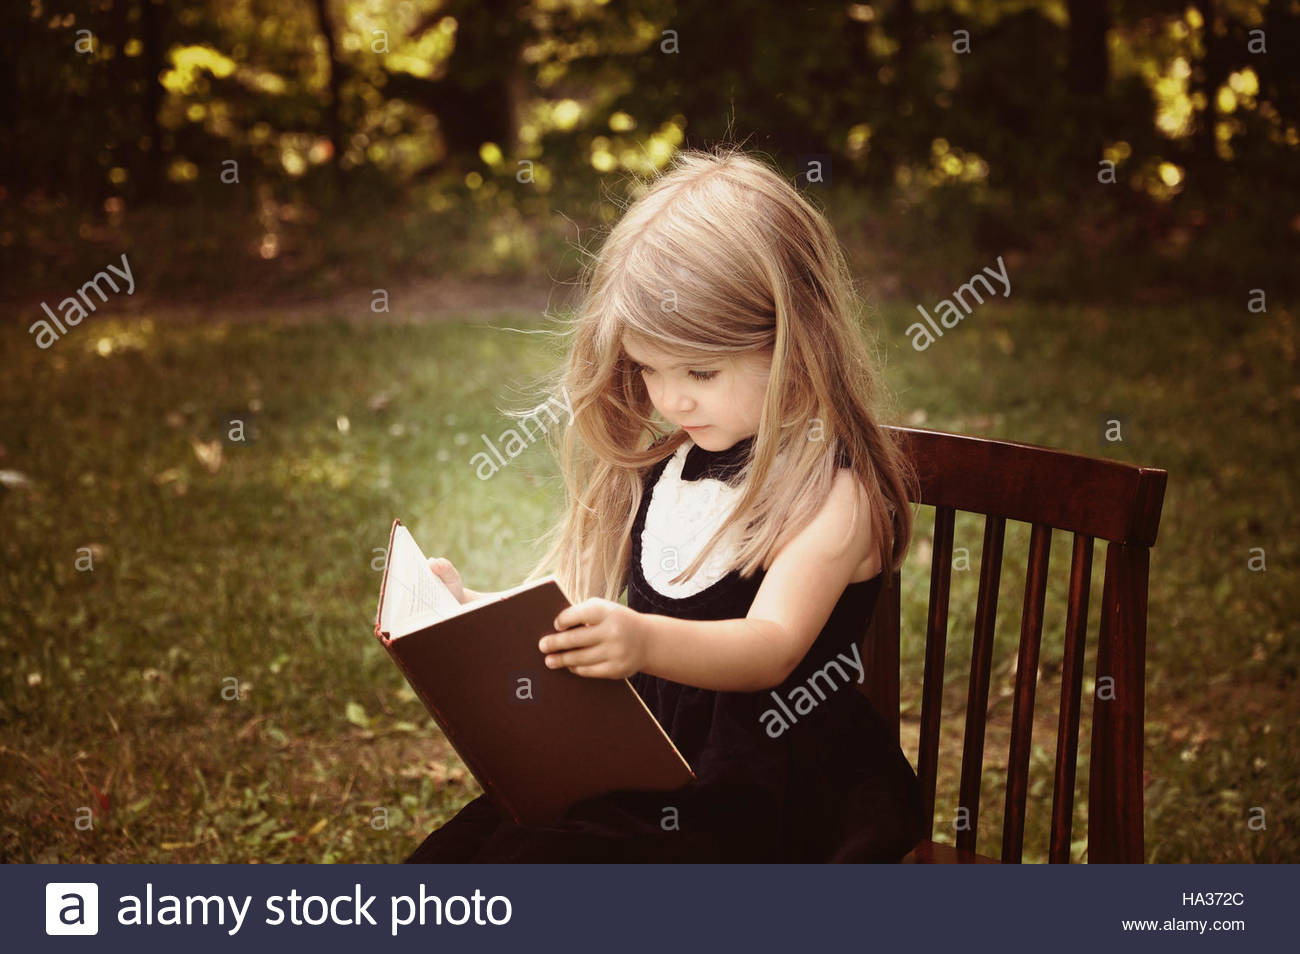 A smart little girl is reading an old book in nature with trees in the background for an education or knowledge - Stock Image